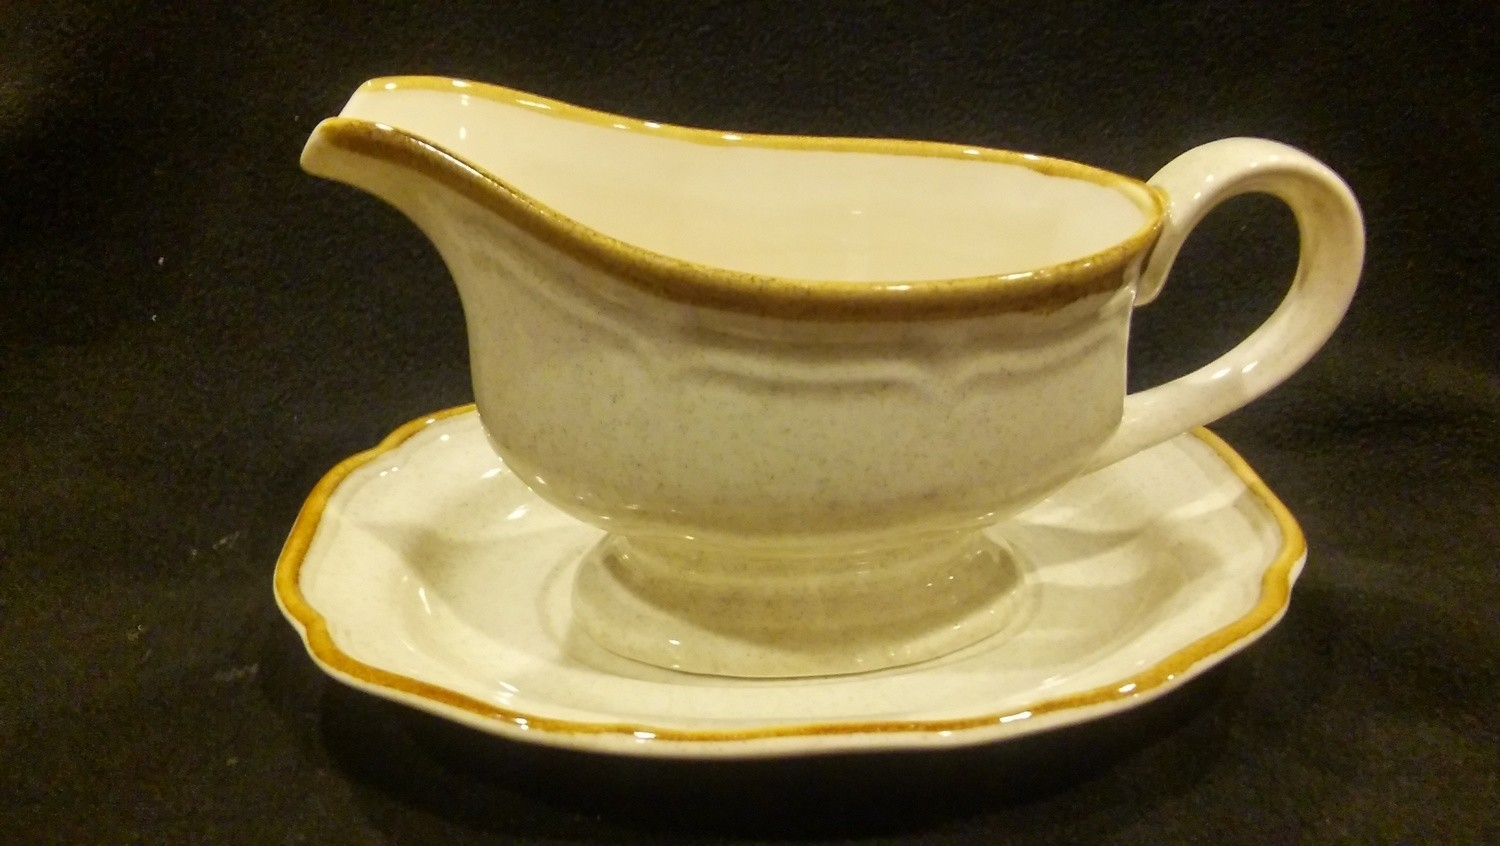 Mikasa Garden Club, Footed Gravy Boat with Underplate, Pattern EC400